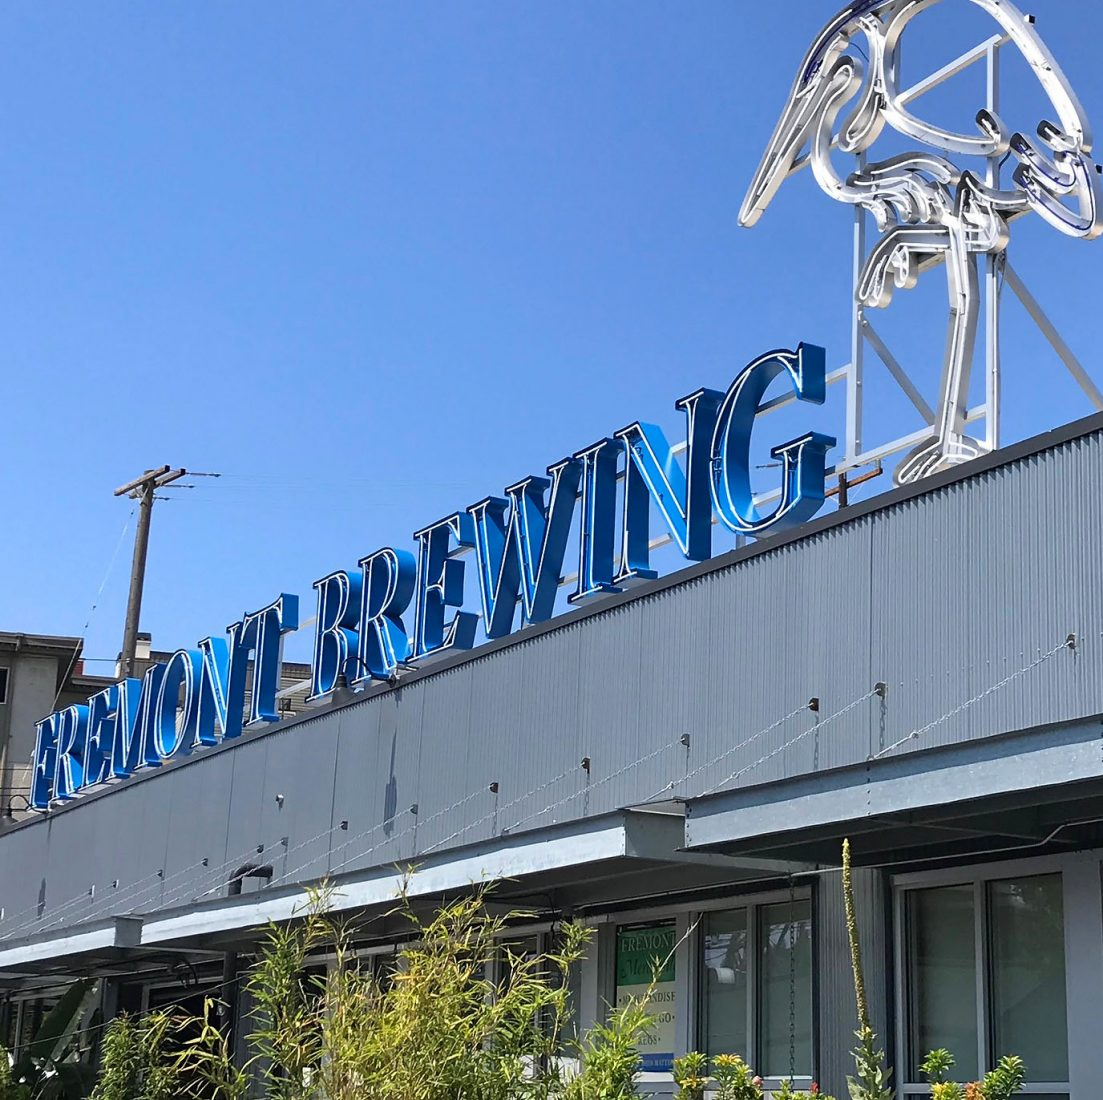 442. Fremont Brewing Co, Seattle WA, 2019